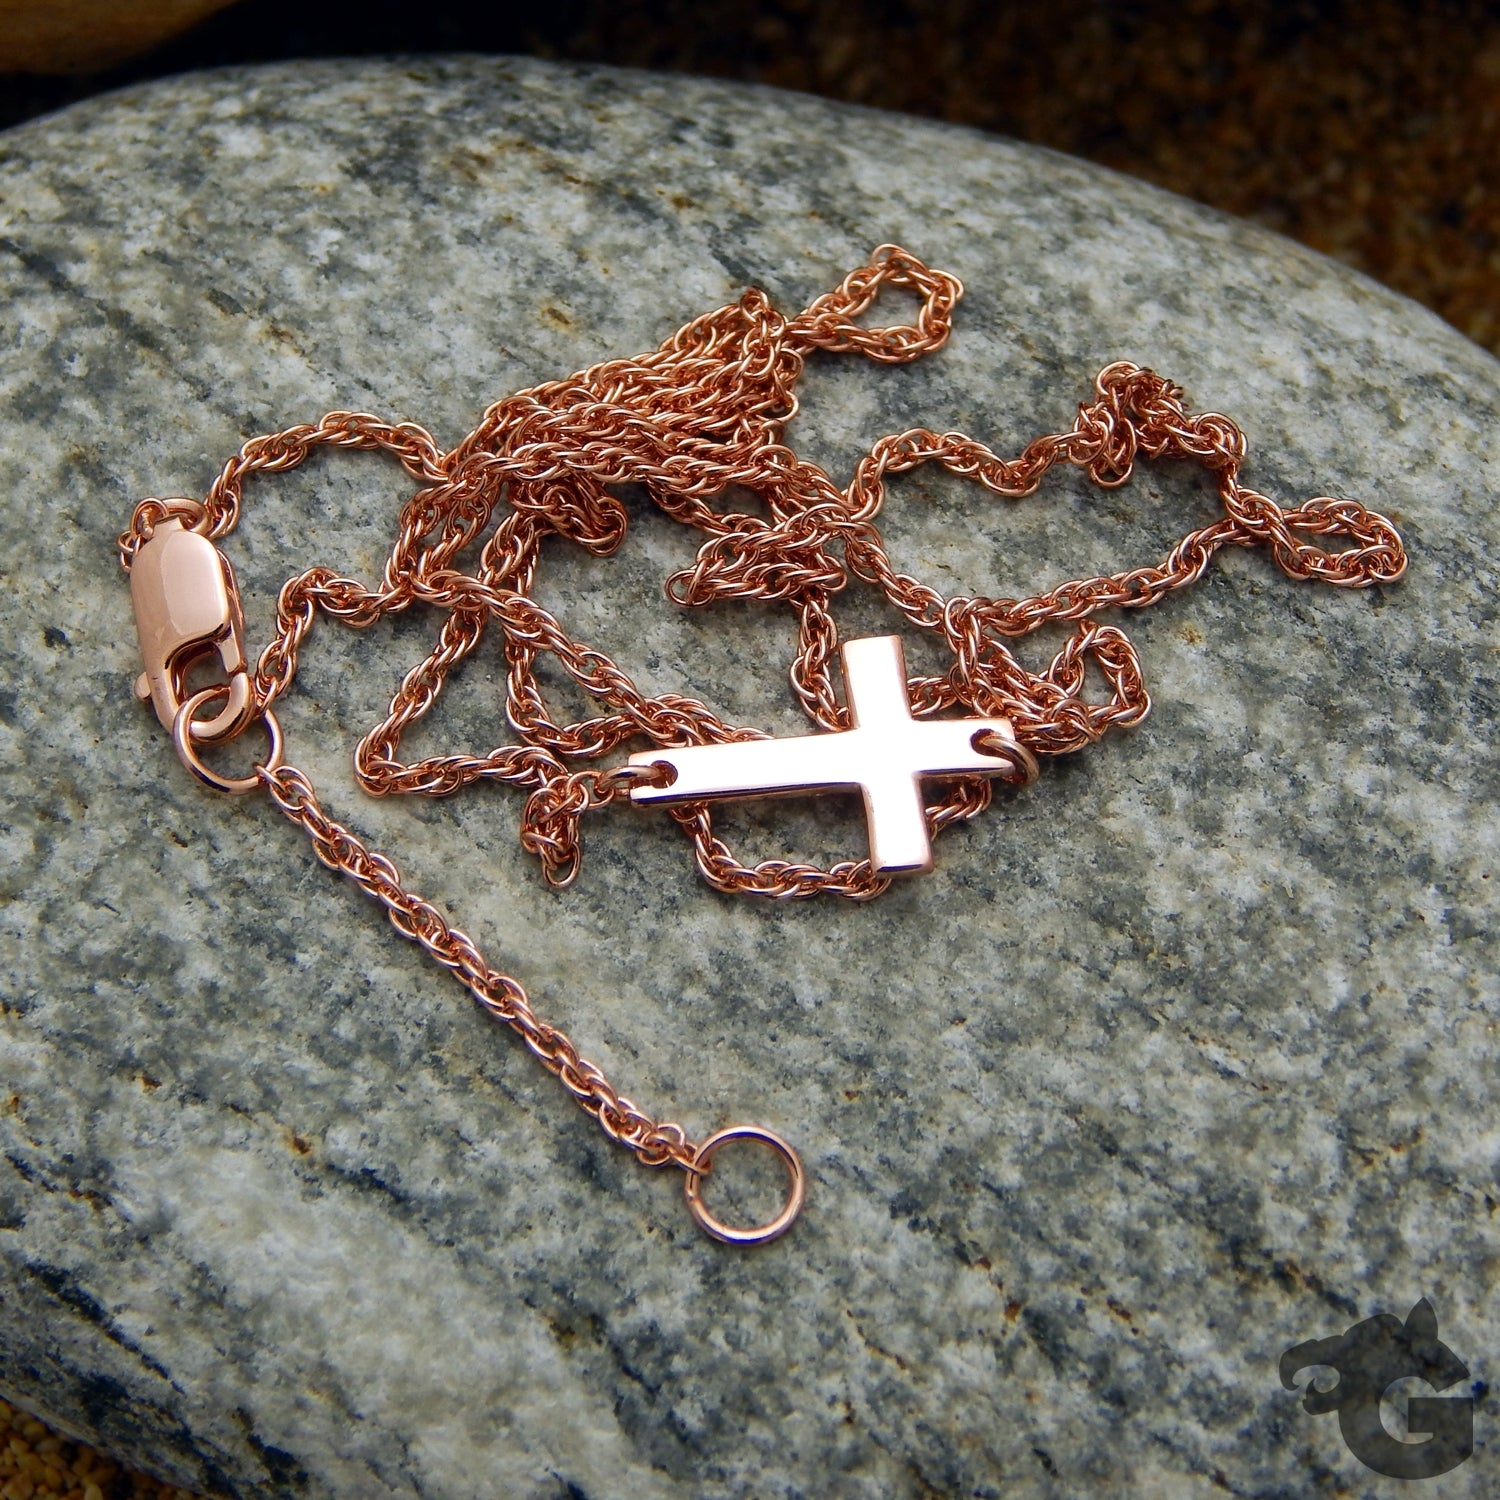 Cross necklace 925 Sterling silver 18 K rose gold plated 17 inches rope chain - Glermes.com